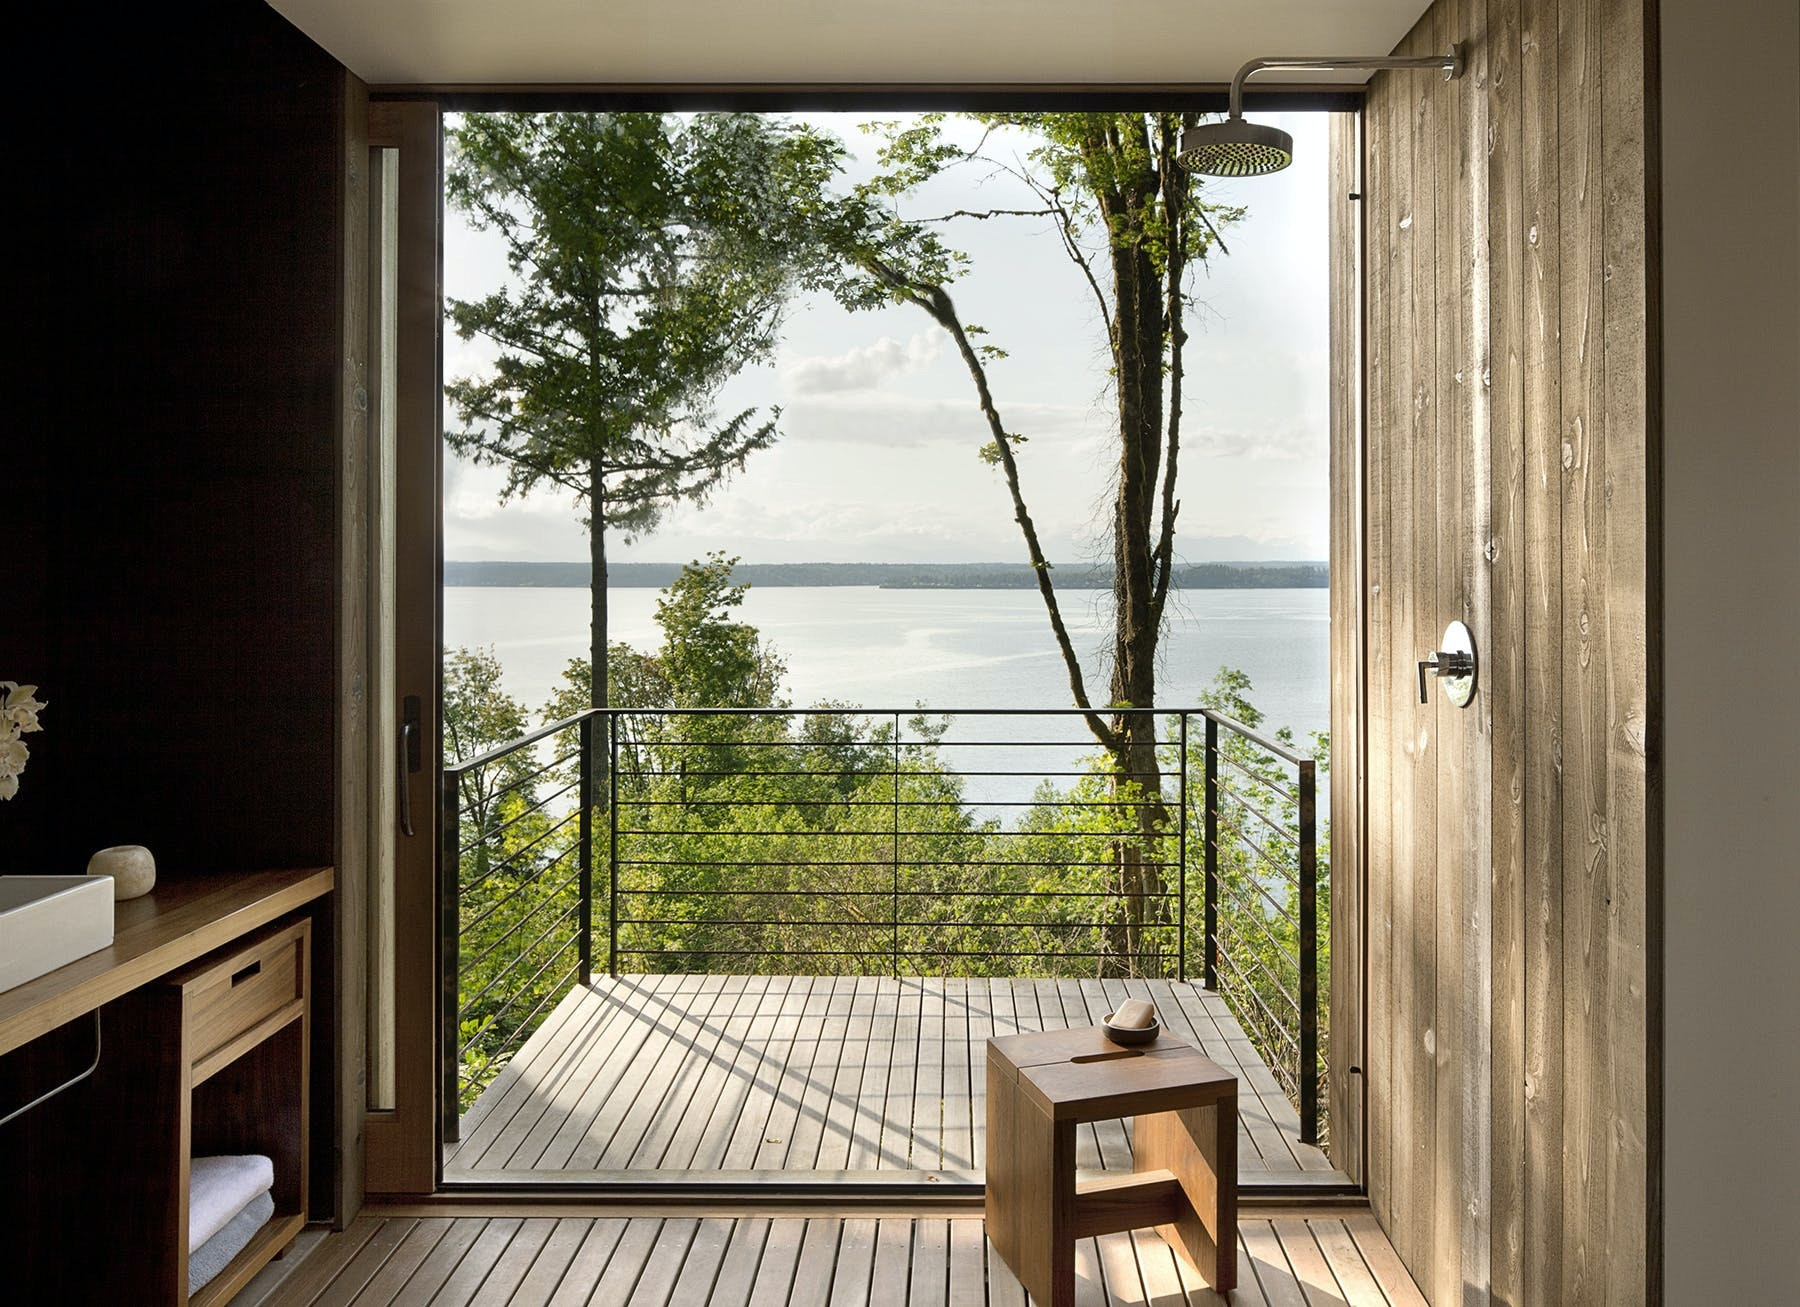 Retreat In Case Inlet, WA By Mw|works Architecture + Design